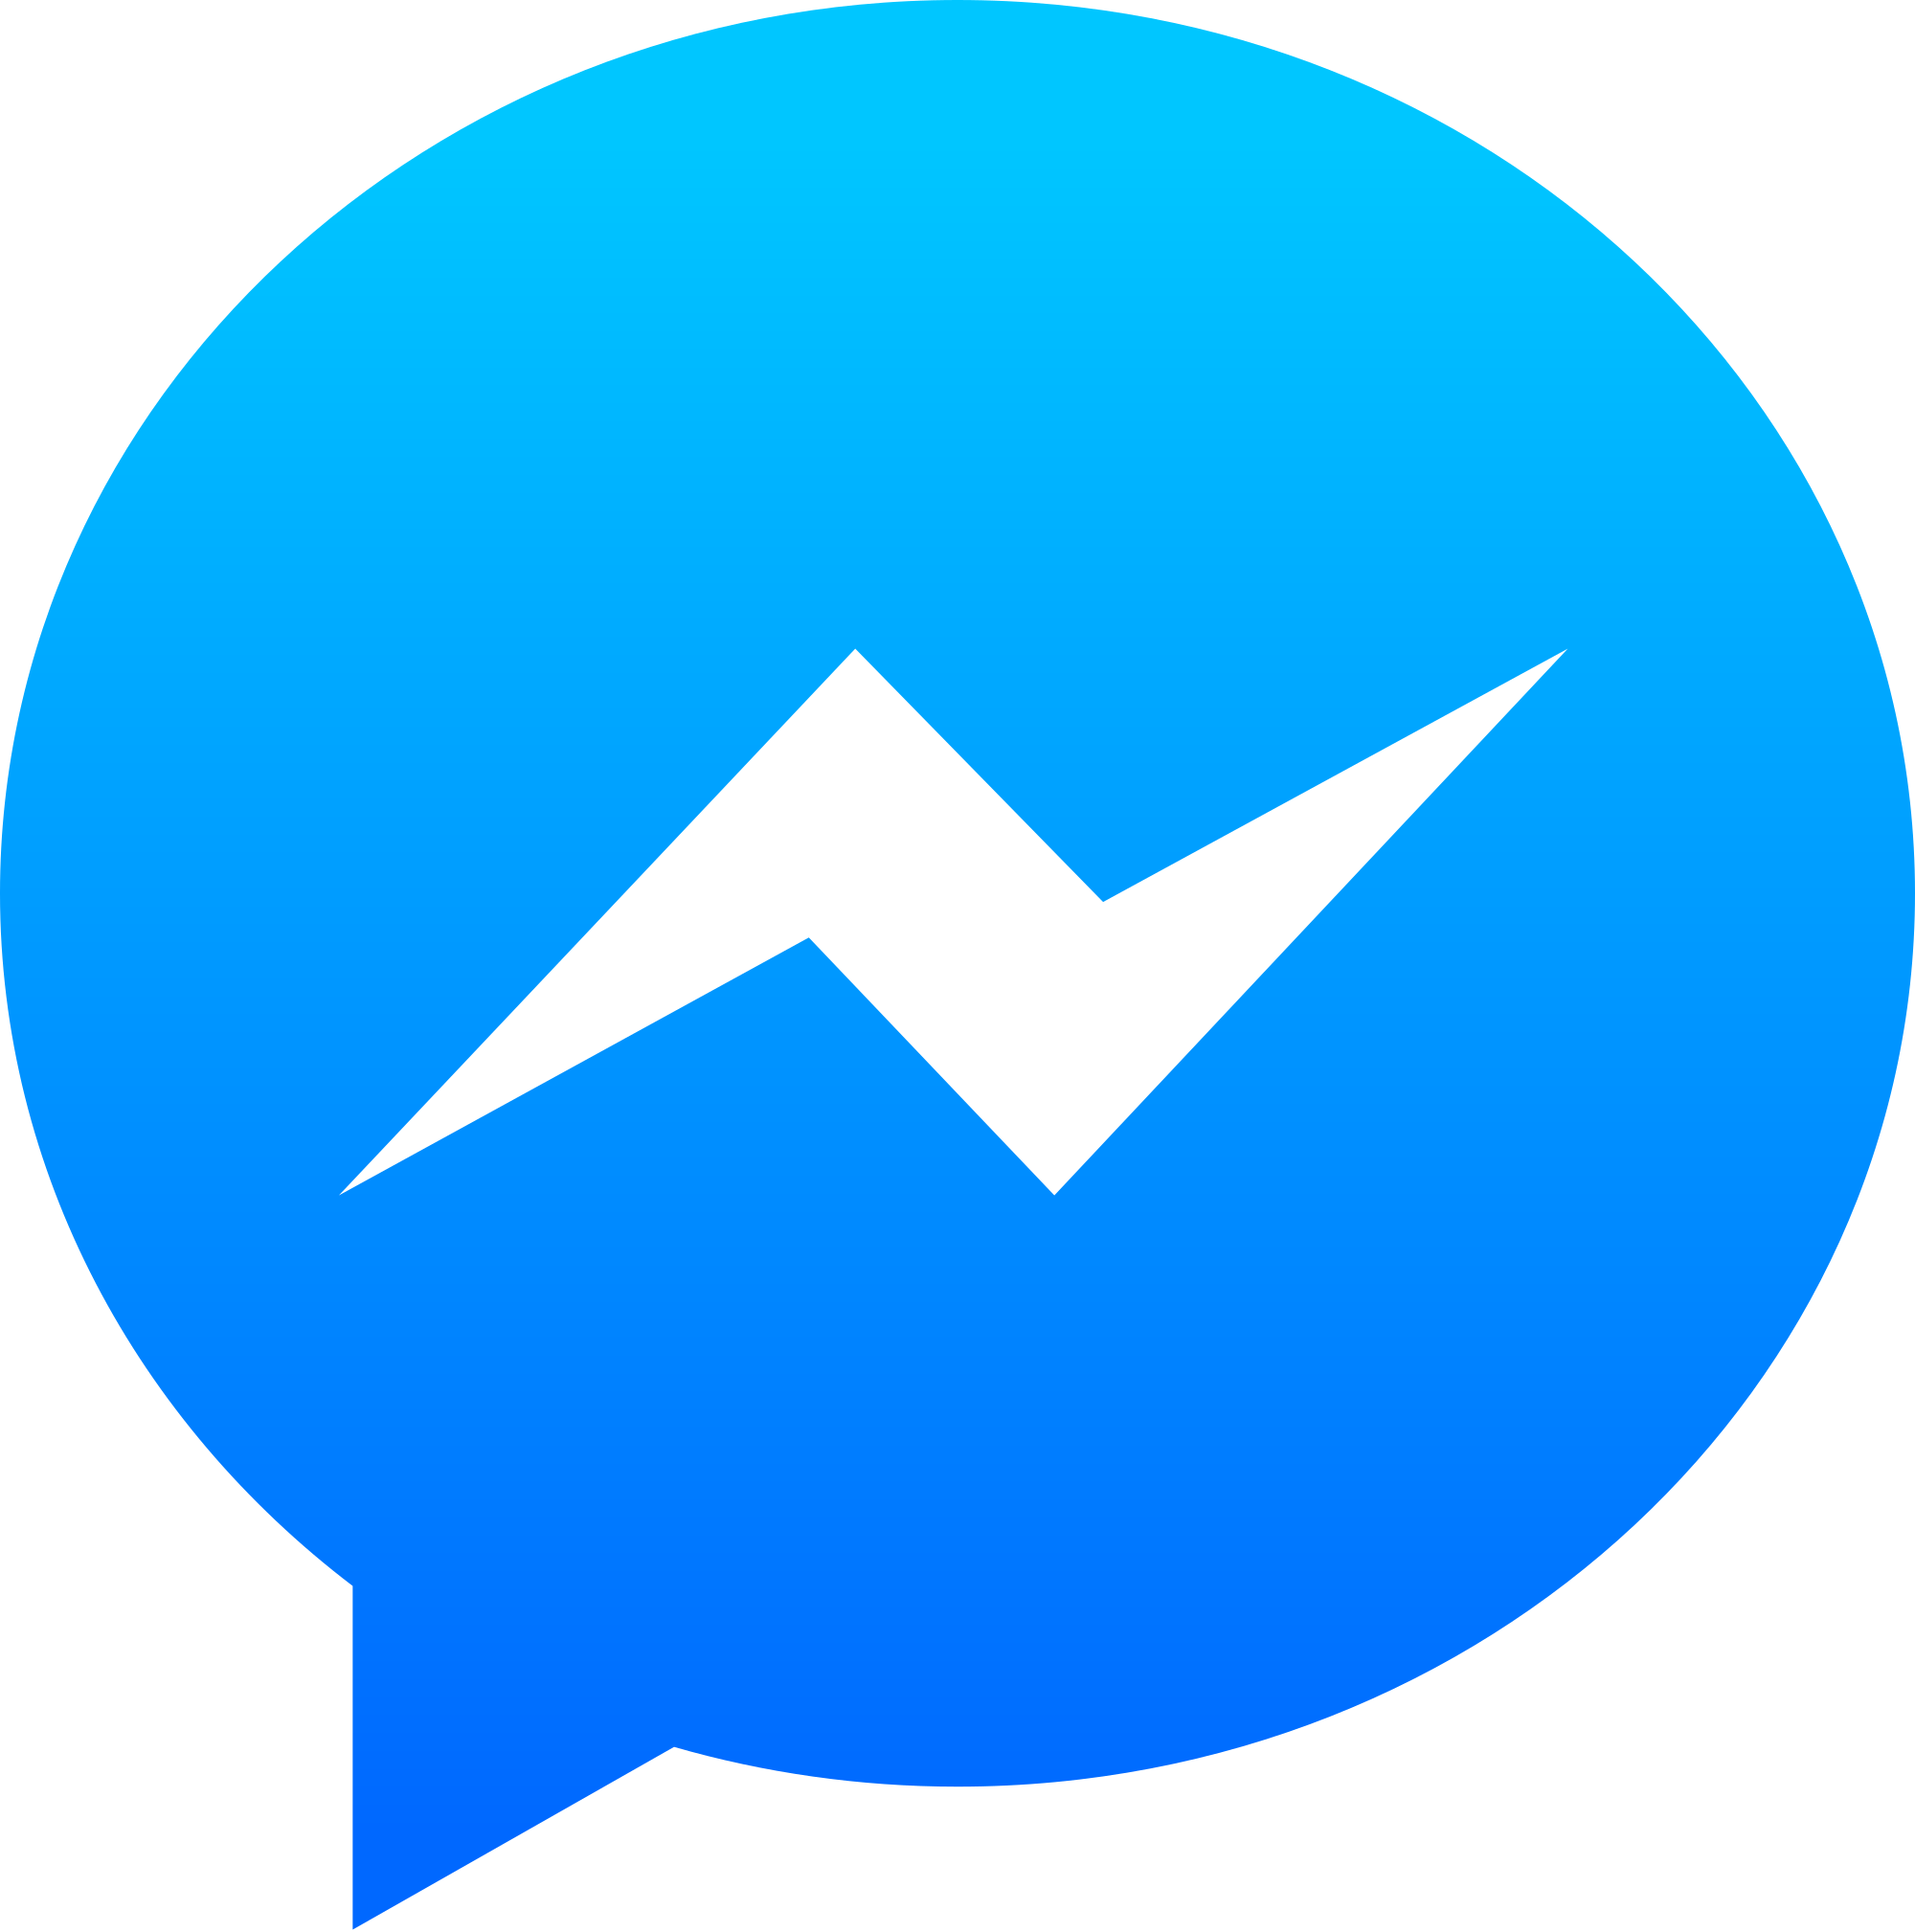 Dashbot provides analytics from Facebook Messenger.